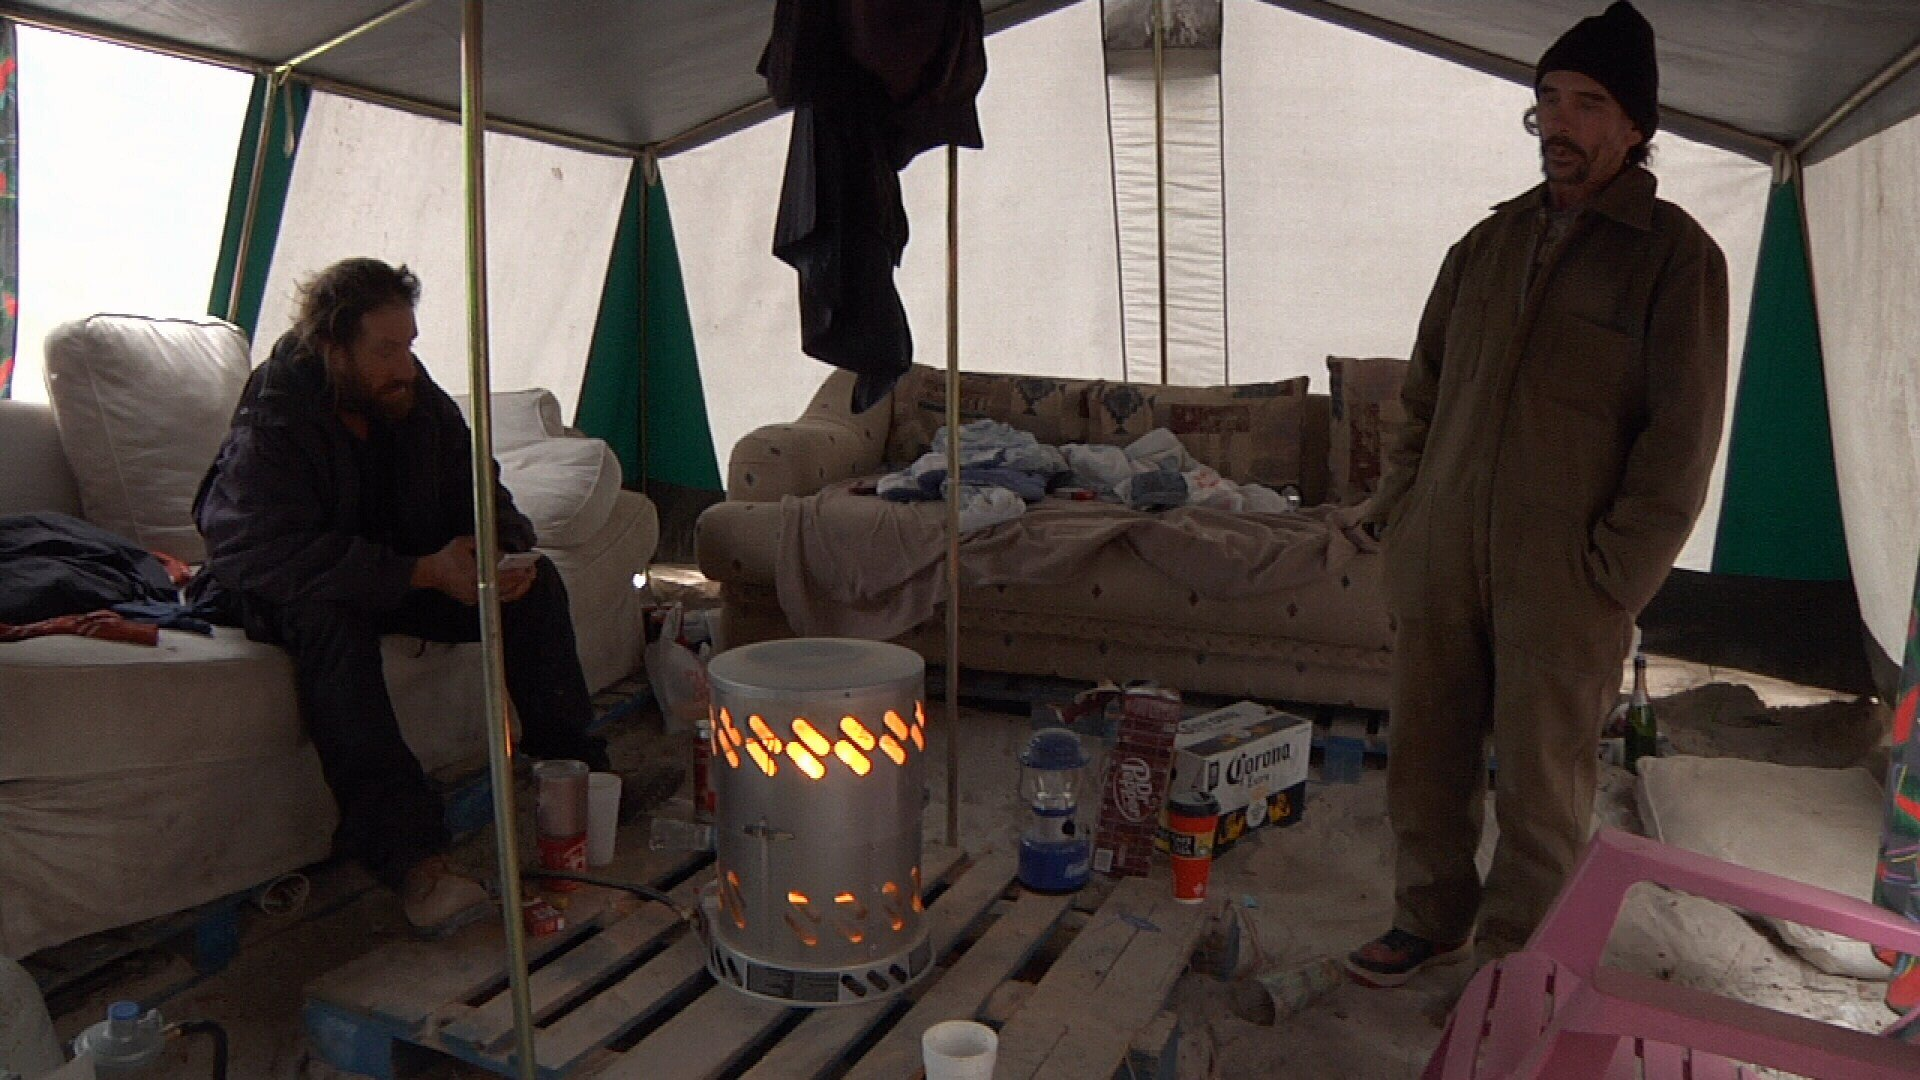 People living in tents use heaters and many blankets to stay warm.